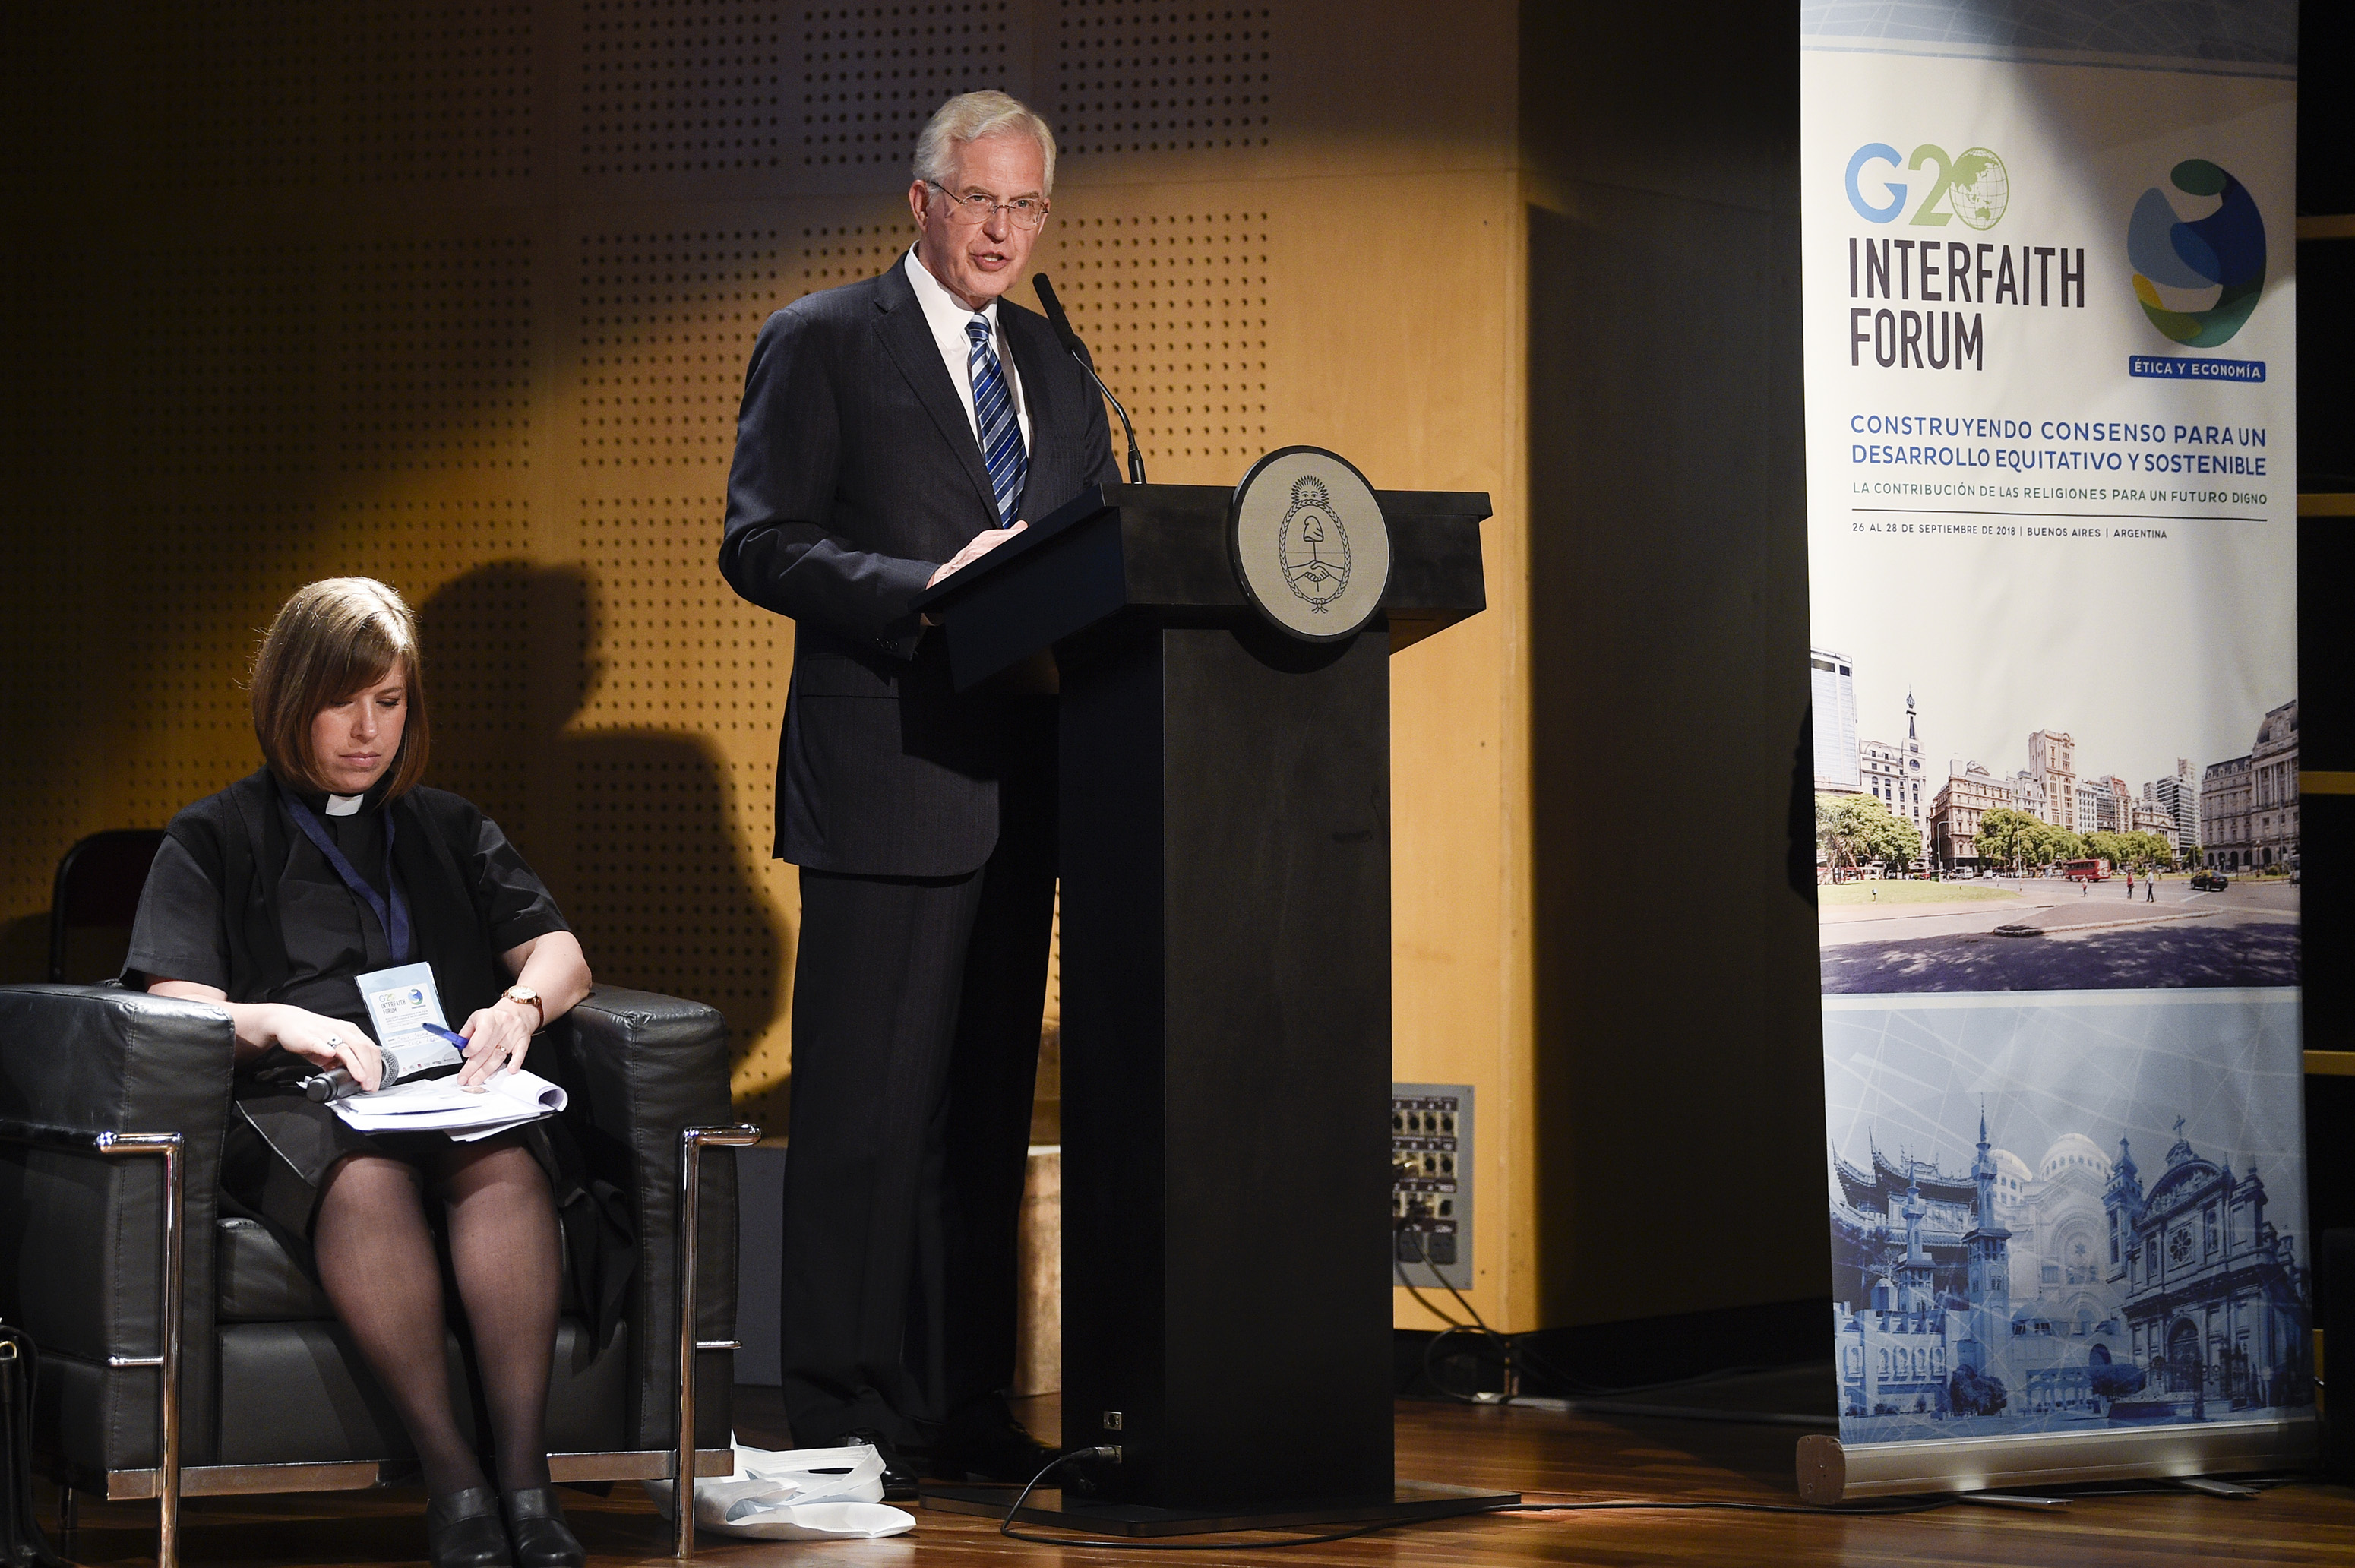 Elder D. Todd Christofferson of the Quorum of the Twelve Apostles speaks at the G20 Interfaith Forum in Buenos Aires, Argentina, on Wednesday, Sept. 26, 2018.